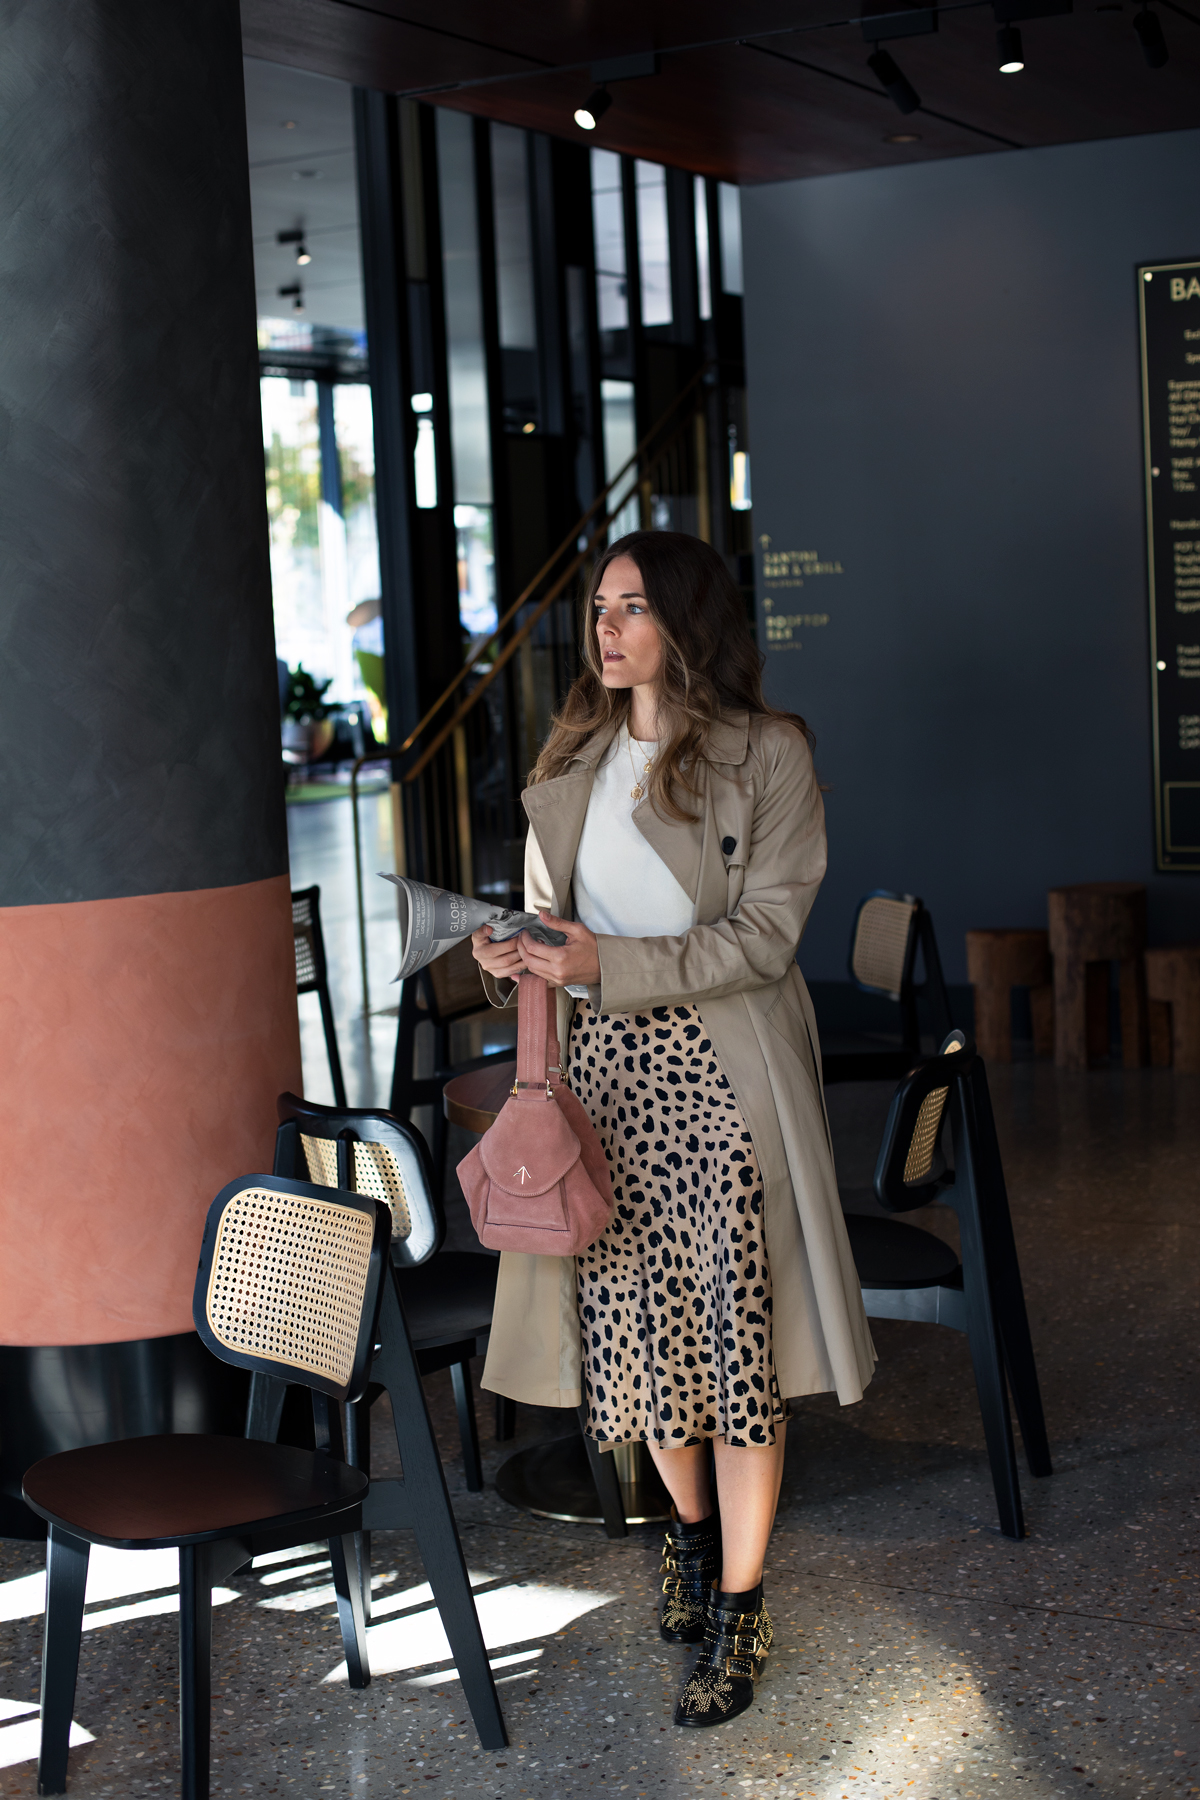 leopard print skirt outfit idea with trench coat